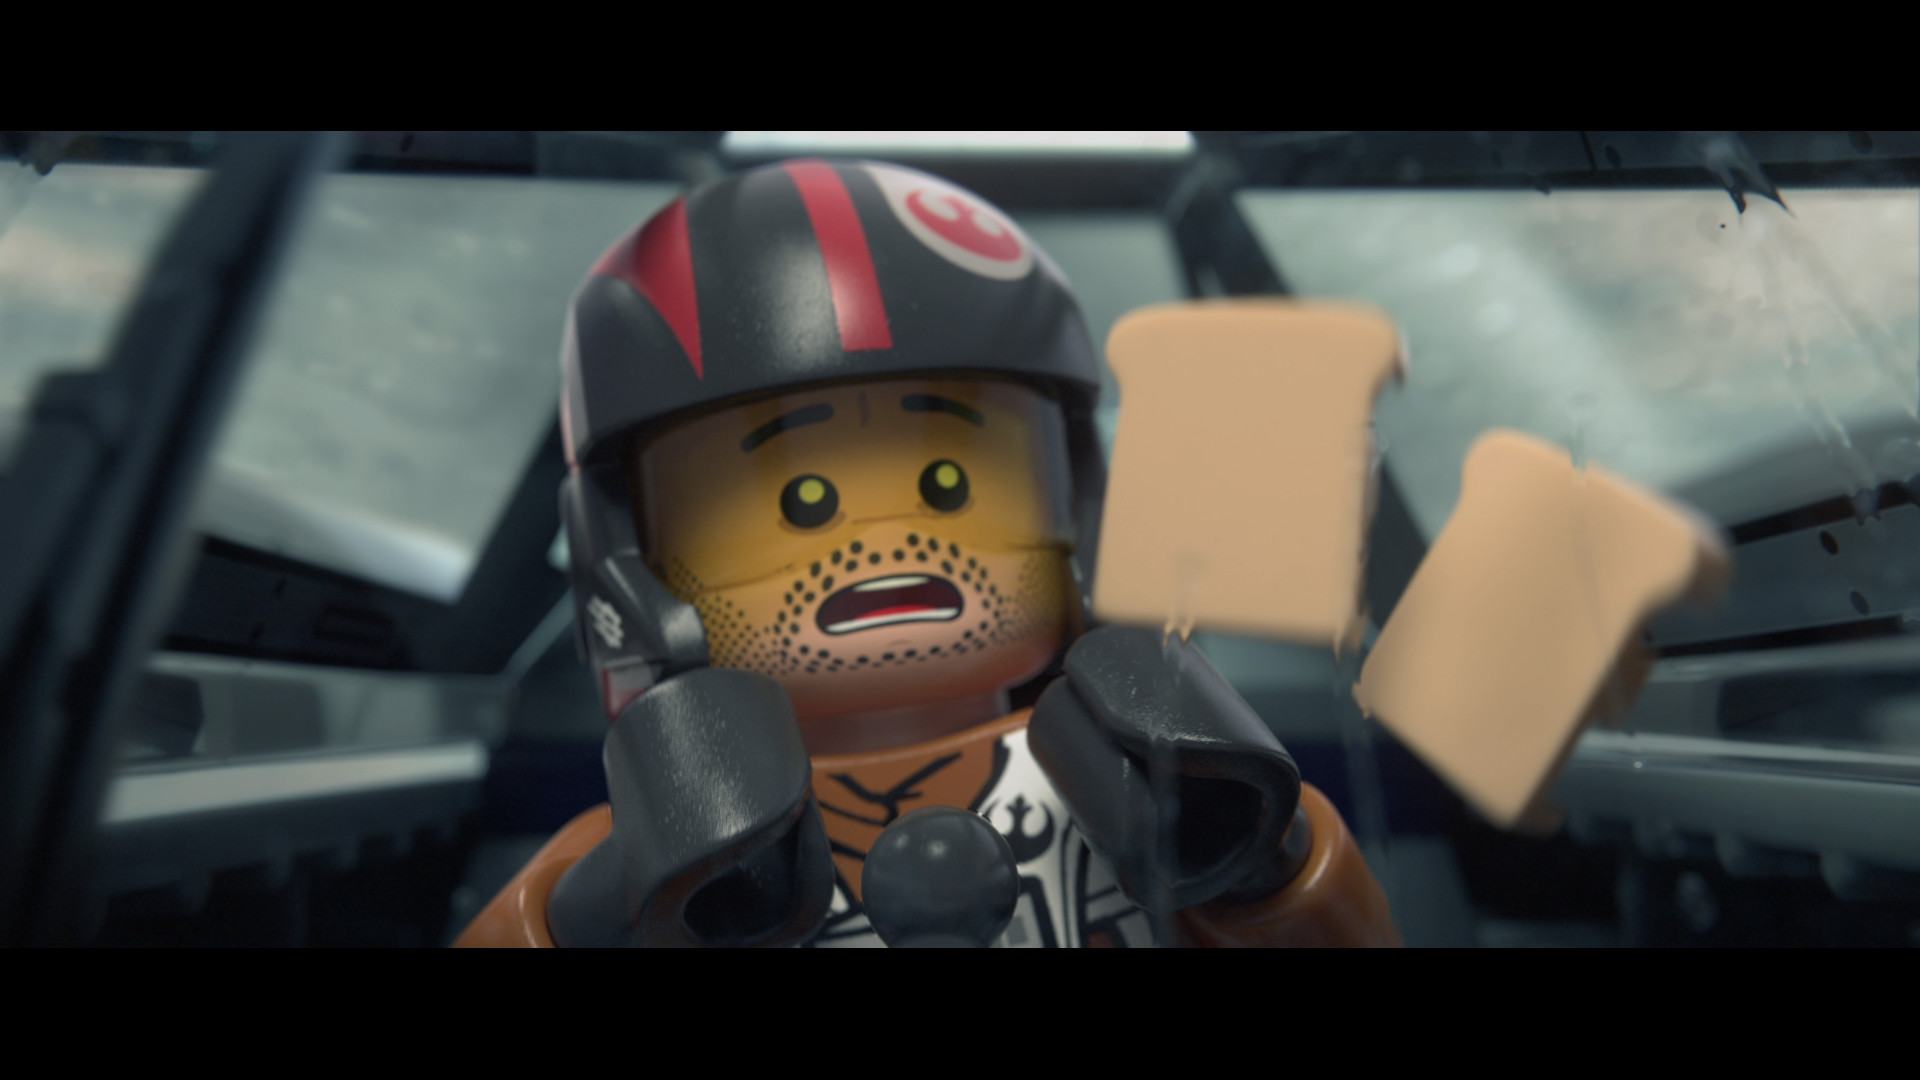 Lego Star Wars The Force Awakens Setup Free Download